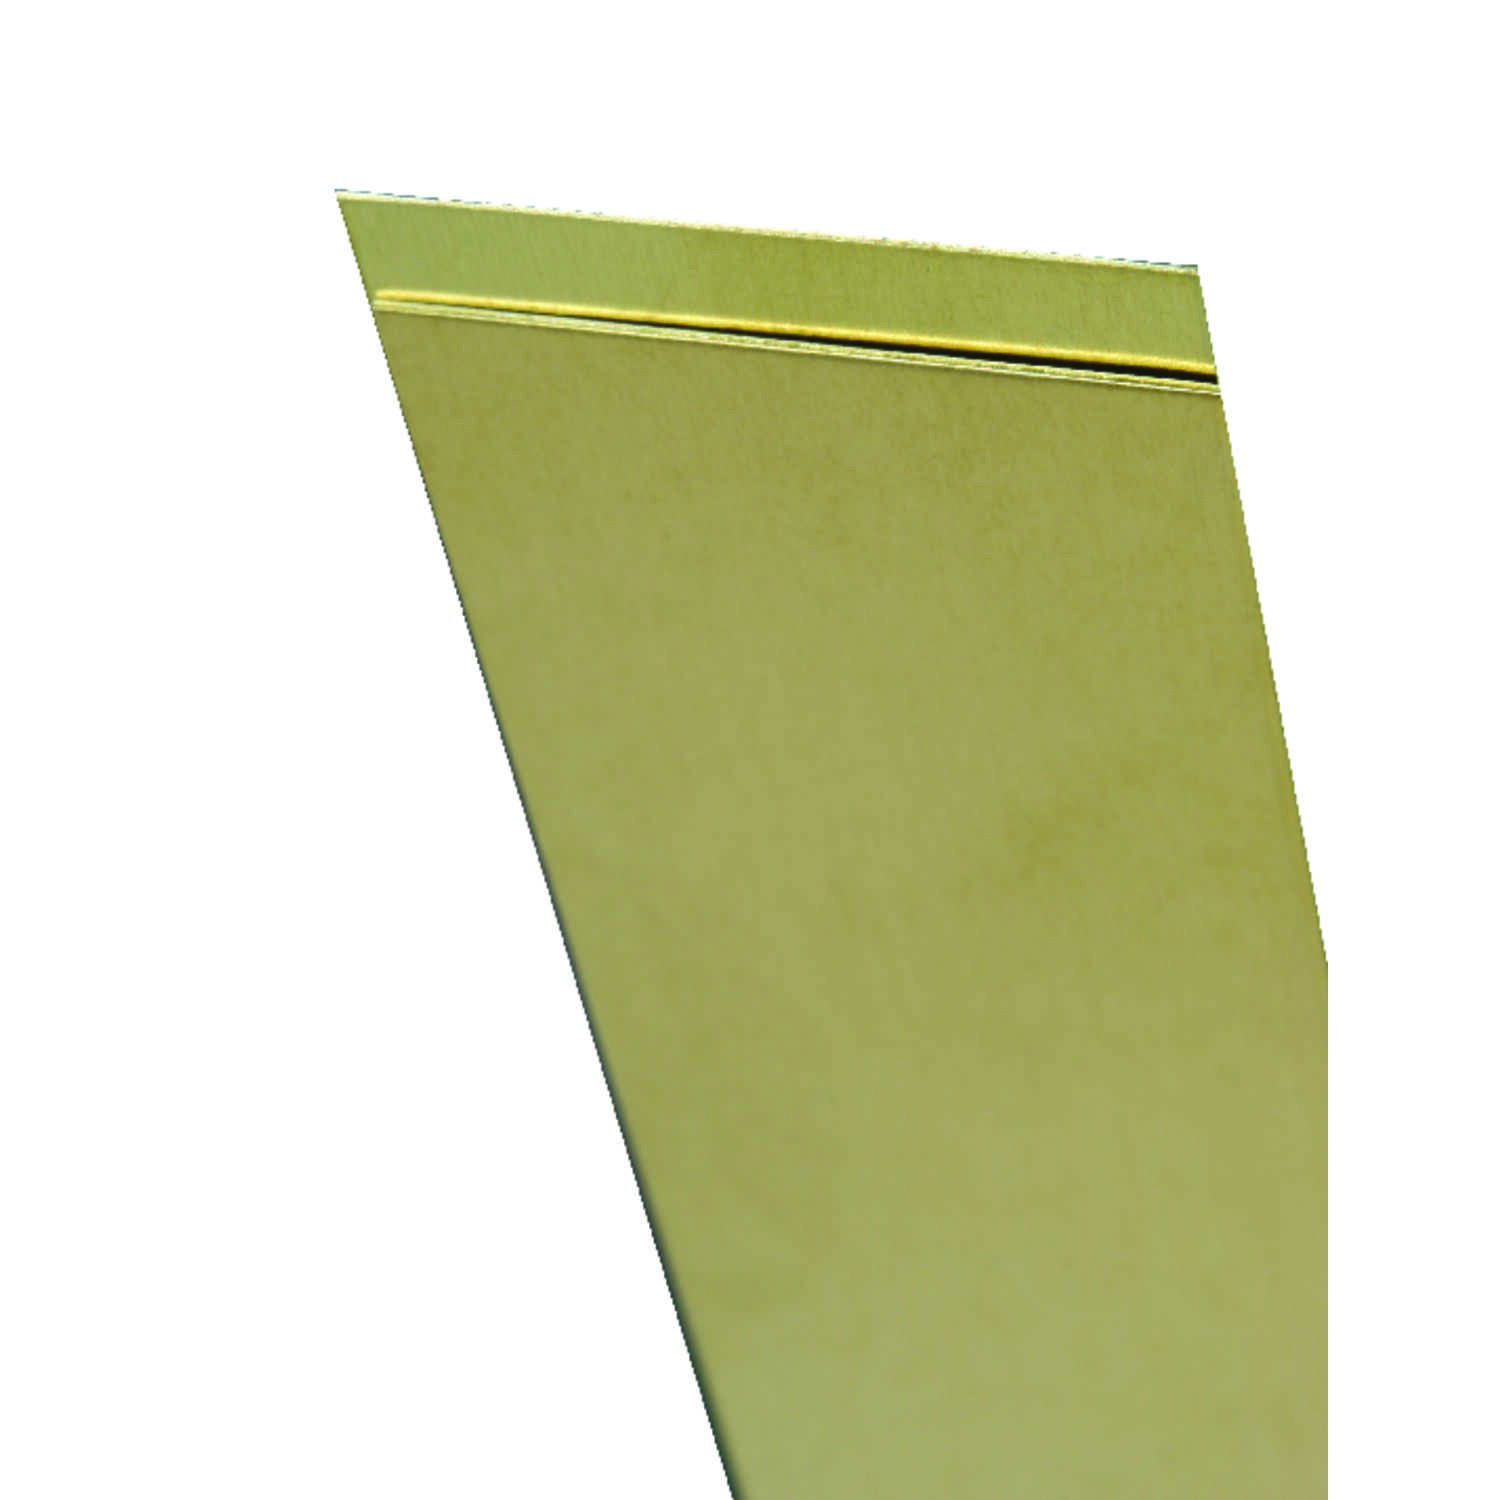 K&S  0.064 in.  x 1 in. W x 12 in. L Brass  Metal Strip